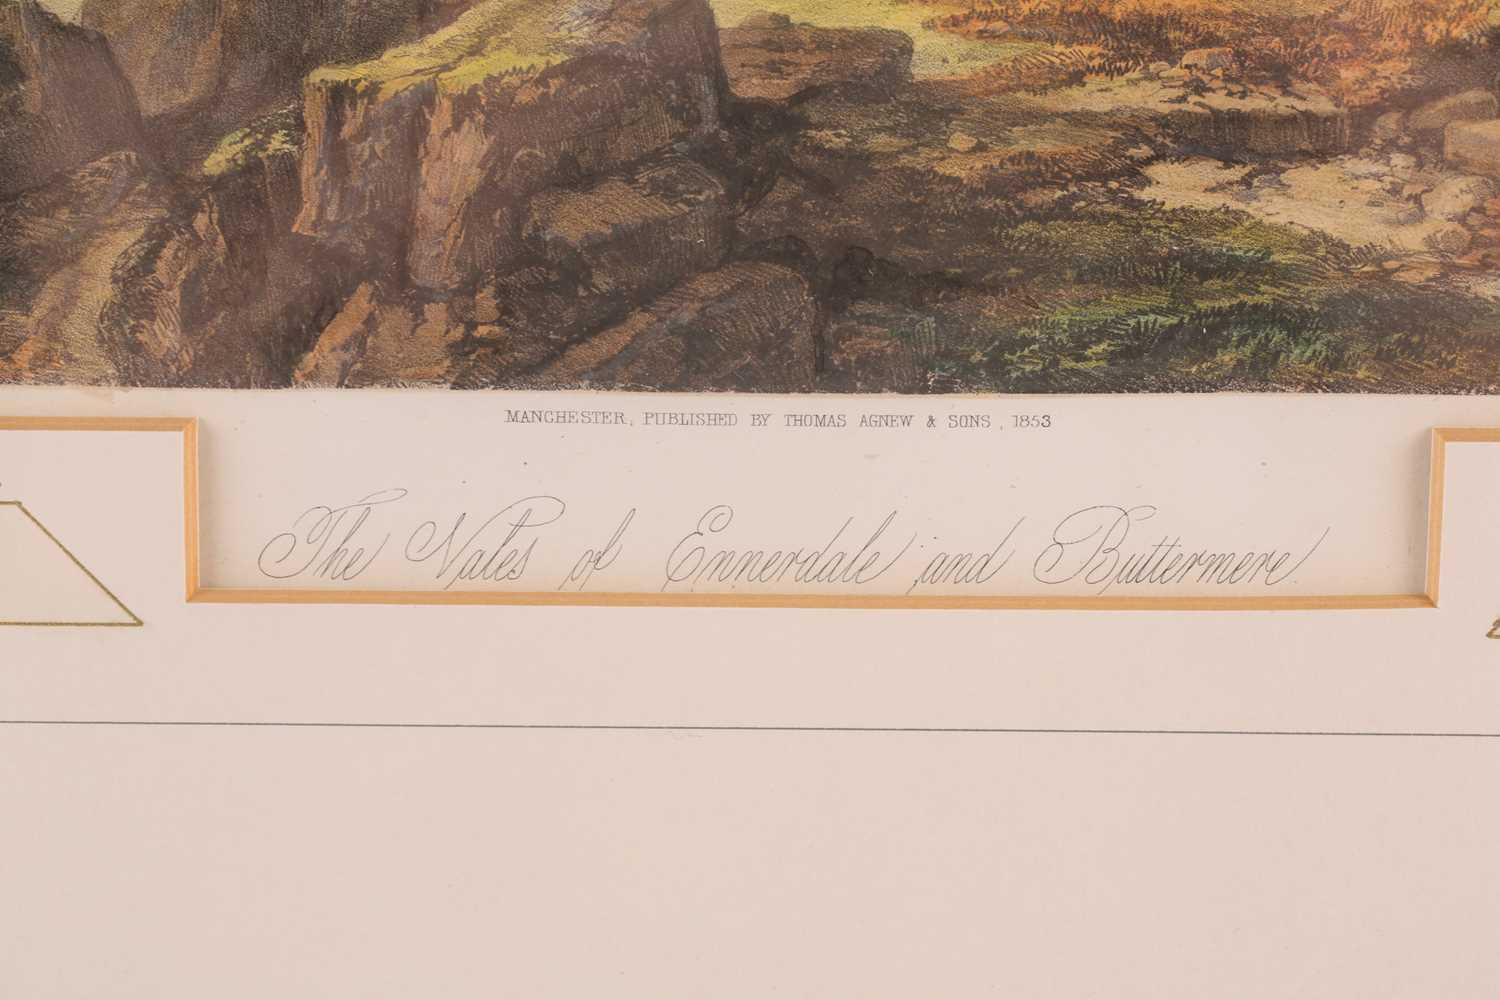 Gauci after J B Pyne, Skiddaw, Buttermere, The Vales of Emmerdale and Buttermere, The Rydal Water, - Image 2 of 13